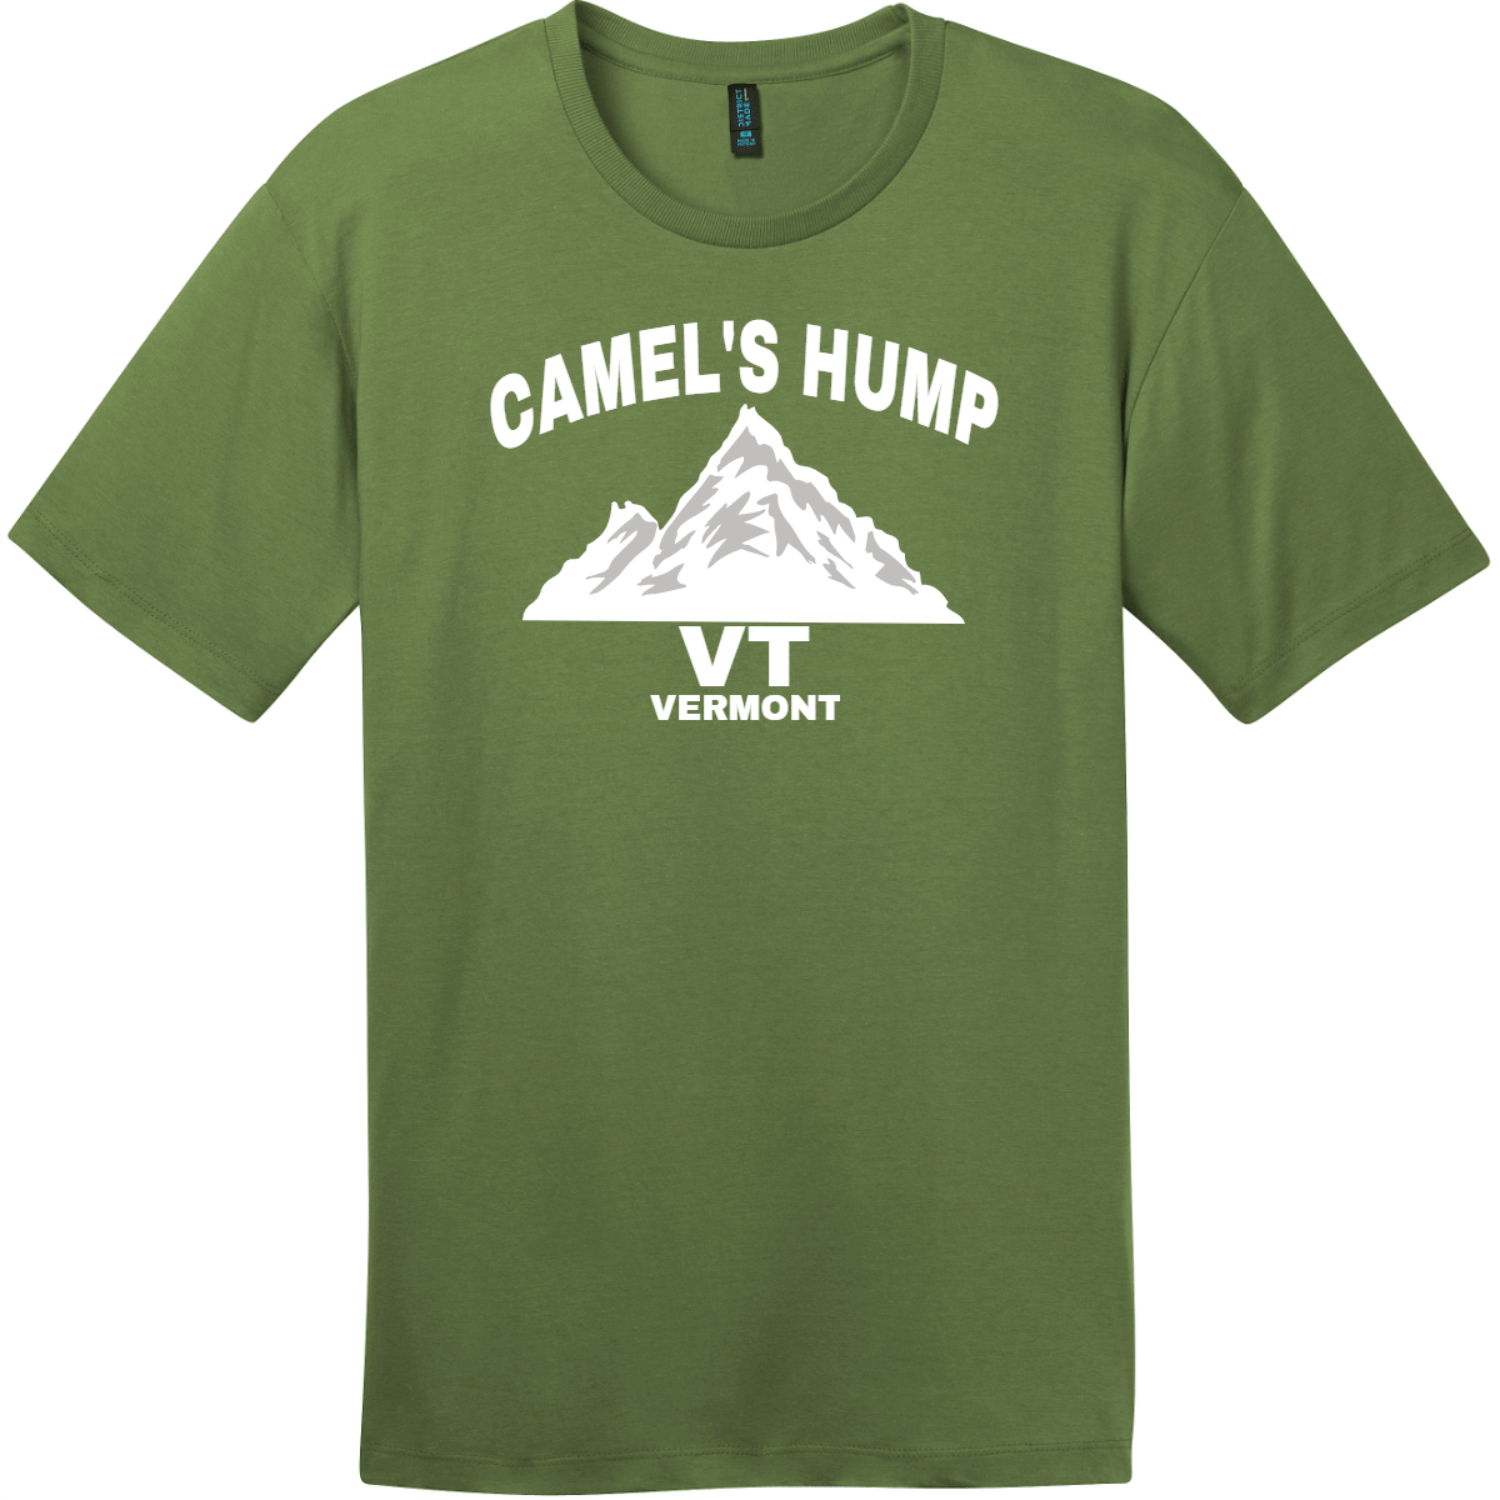 Camel's Hump Mountain Vermont T-Shirt Fresh Fatigue District Perfect Weight Tee DT104